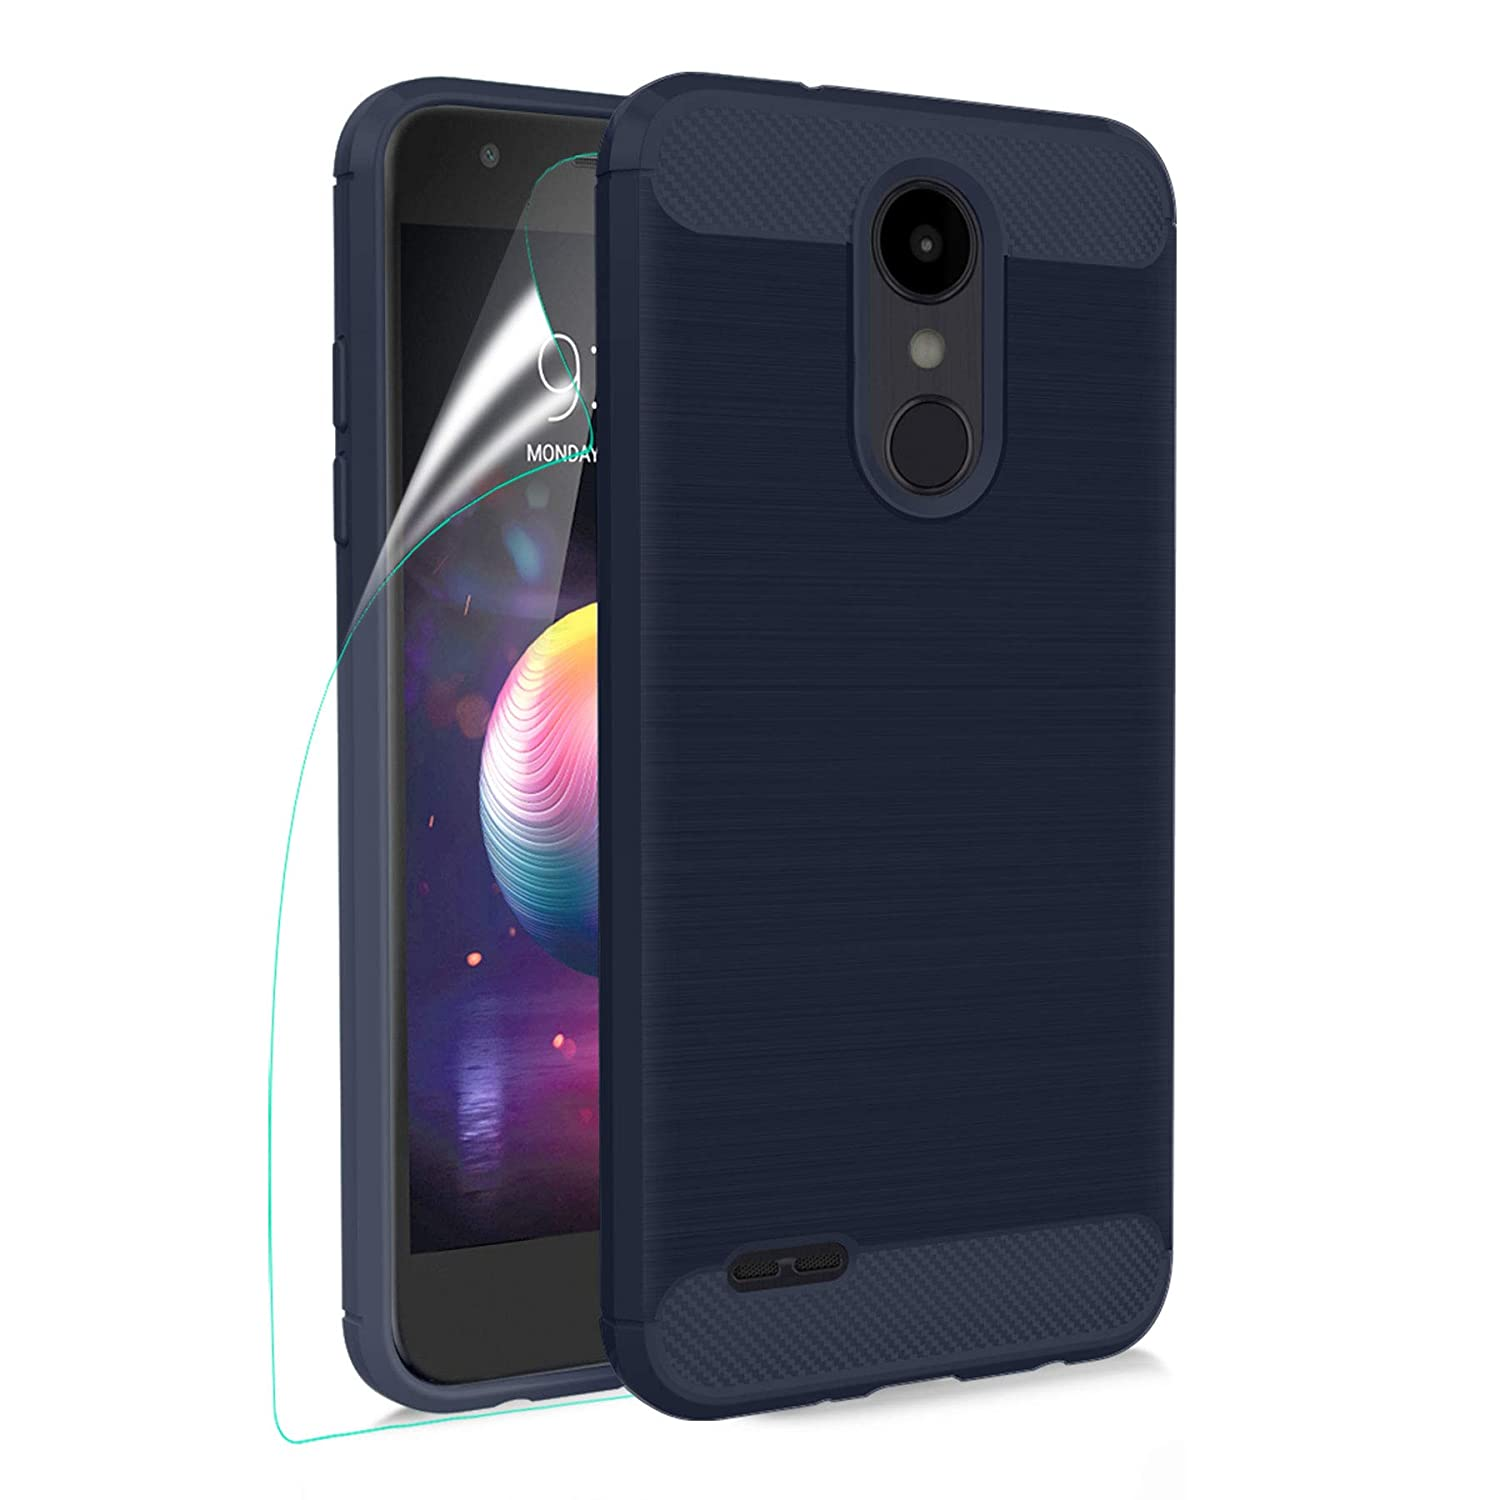 LG K30 Case,LG K10 2018/Premier Pro LTE/CV3 Prime/Xpression Plus/Harmony 2/Phoenix Plus Phone Case with HD Screen Protector, Carbon Fiber Soft TPU Brushed Texture Shockproof Protective Cover, Navy